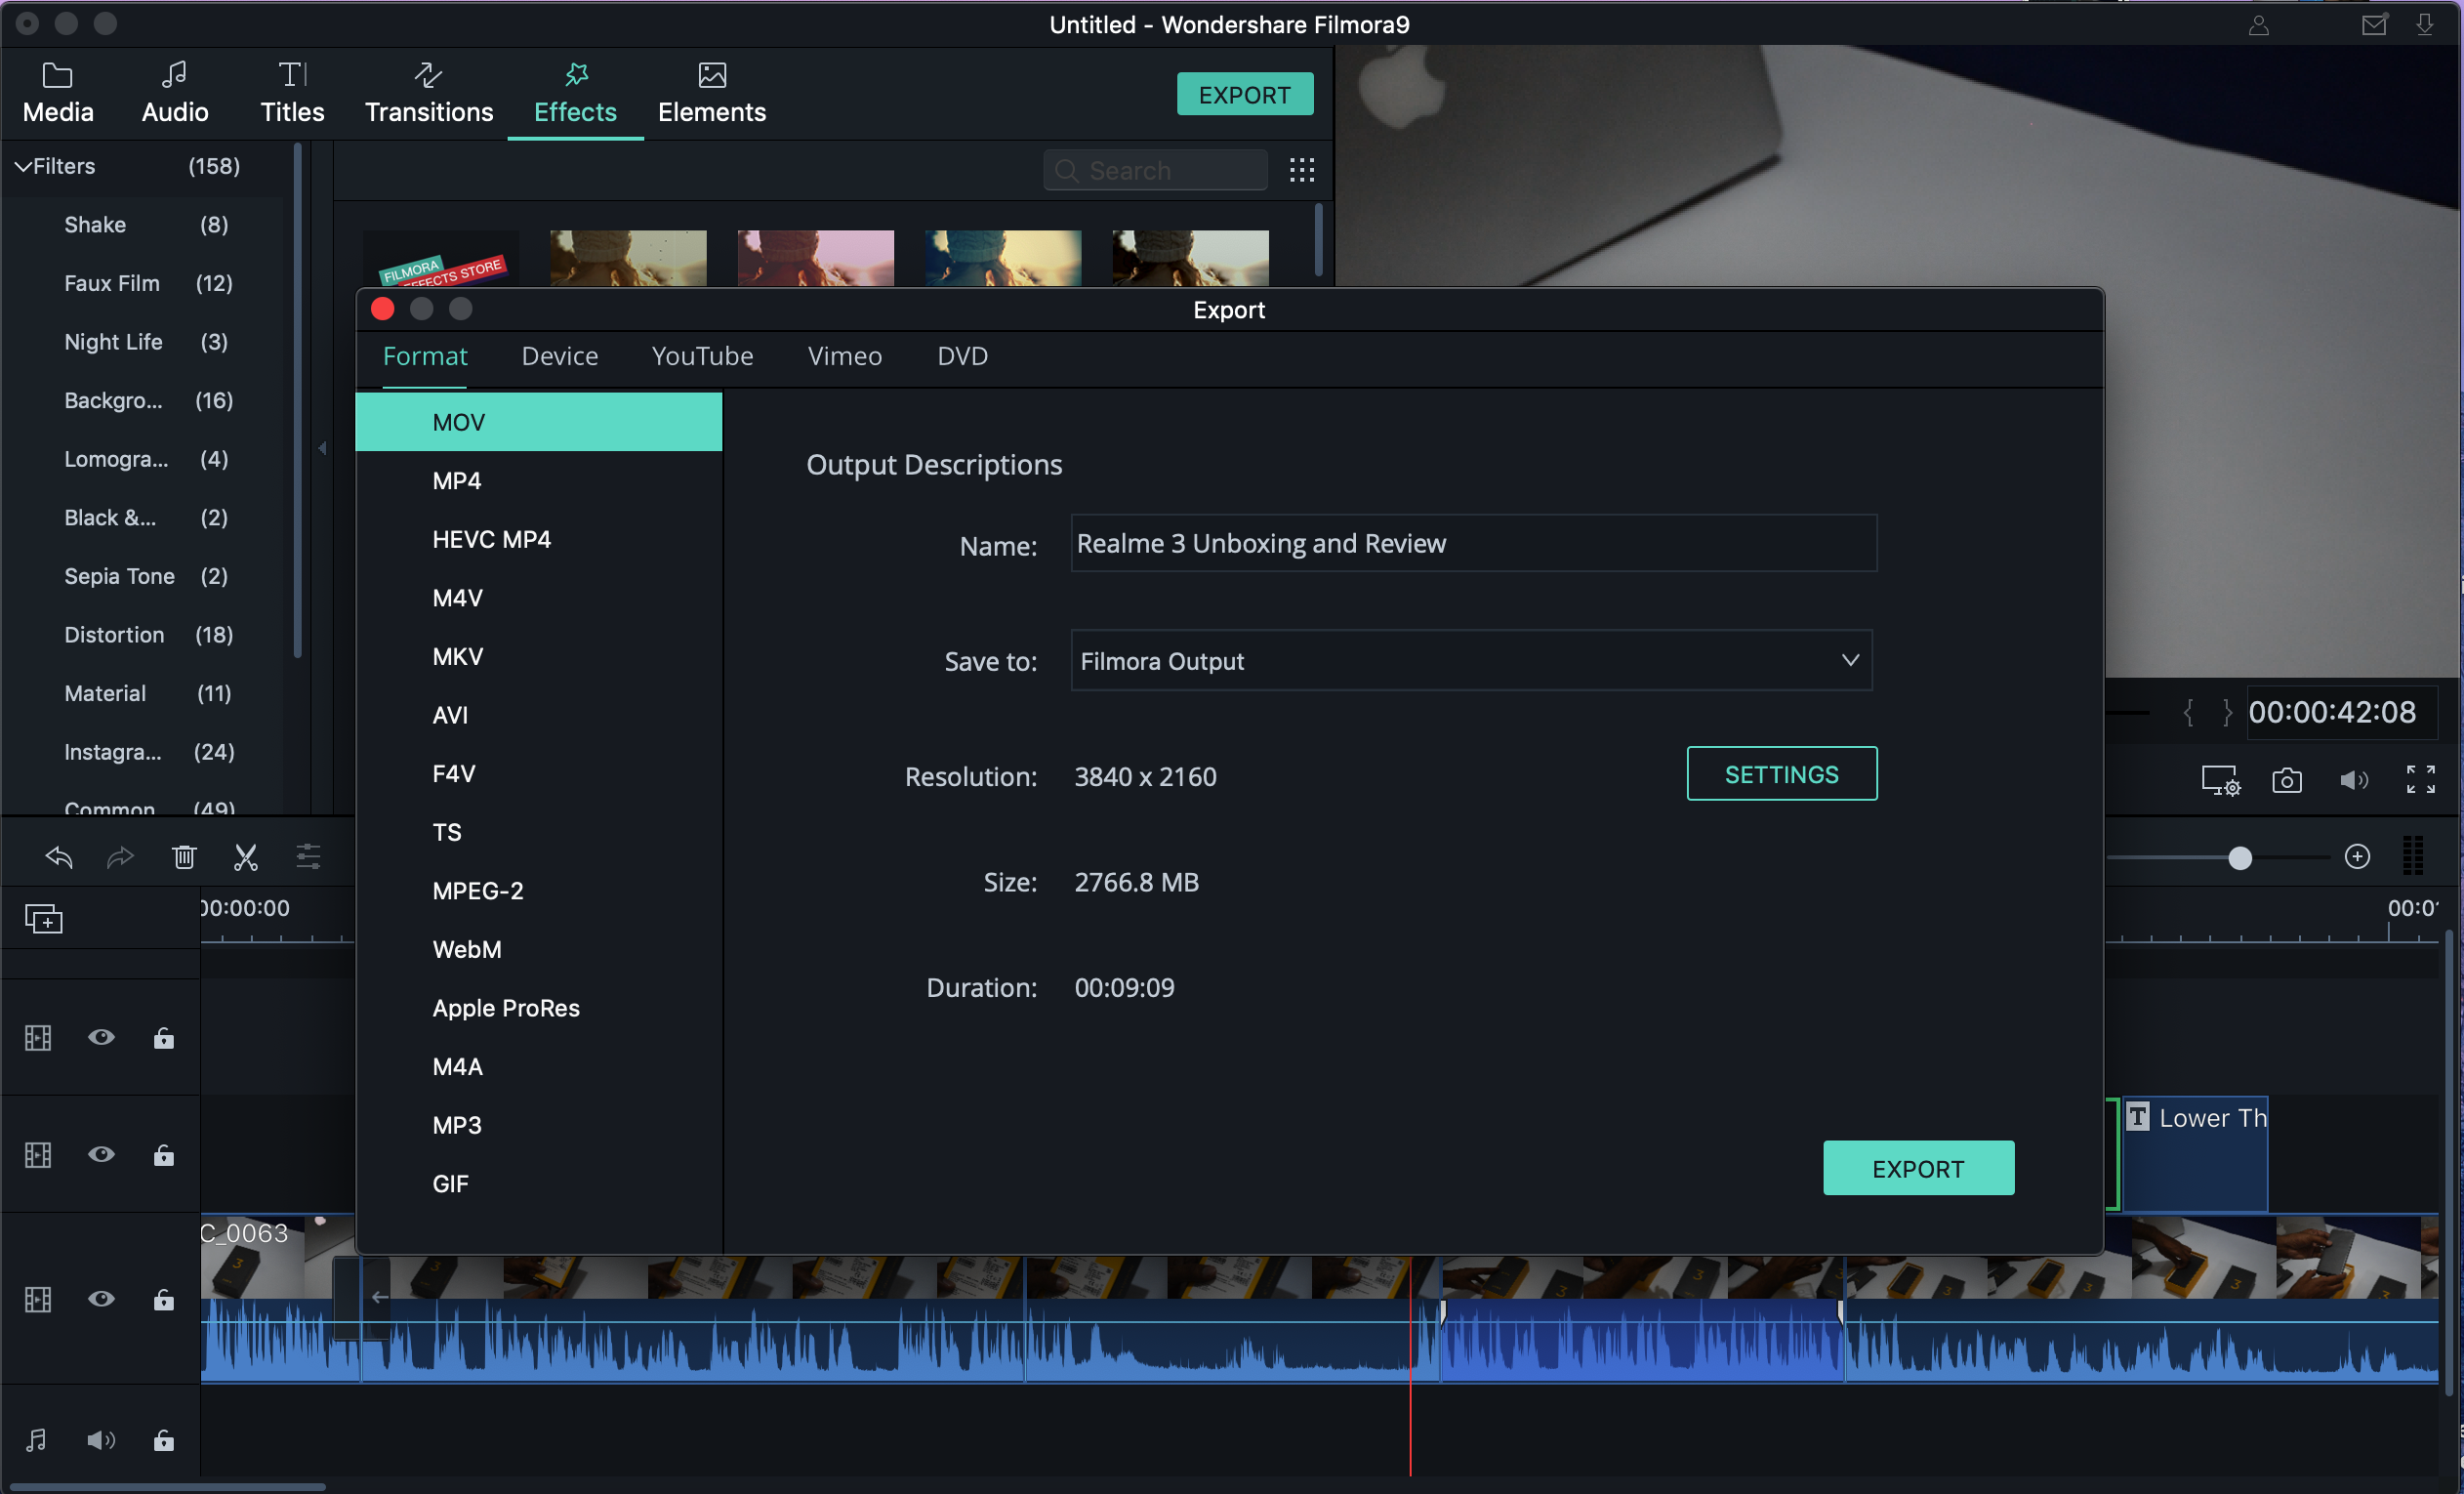 Wondershare Filmora 9 Review An Easy To Use Video Editor For All Techwafer Video Editor Video Editing Software Video Editing